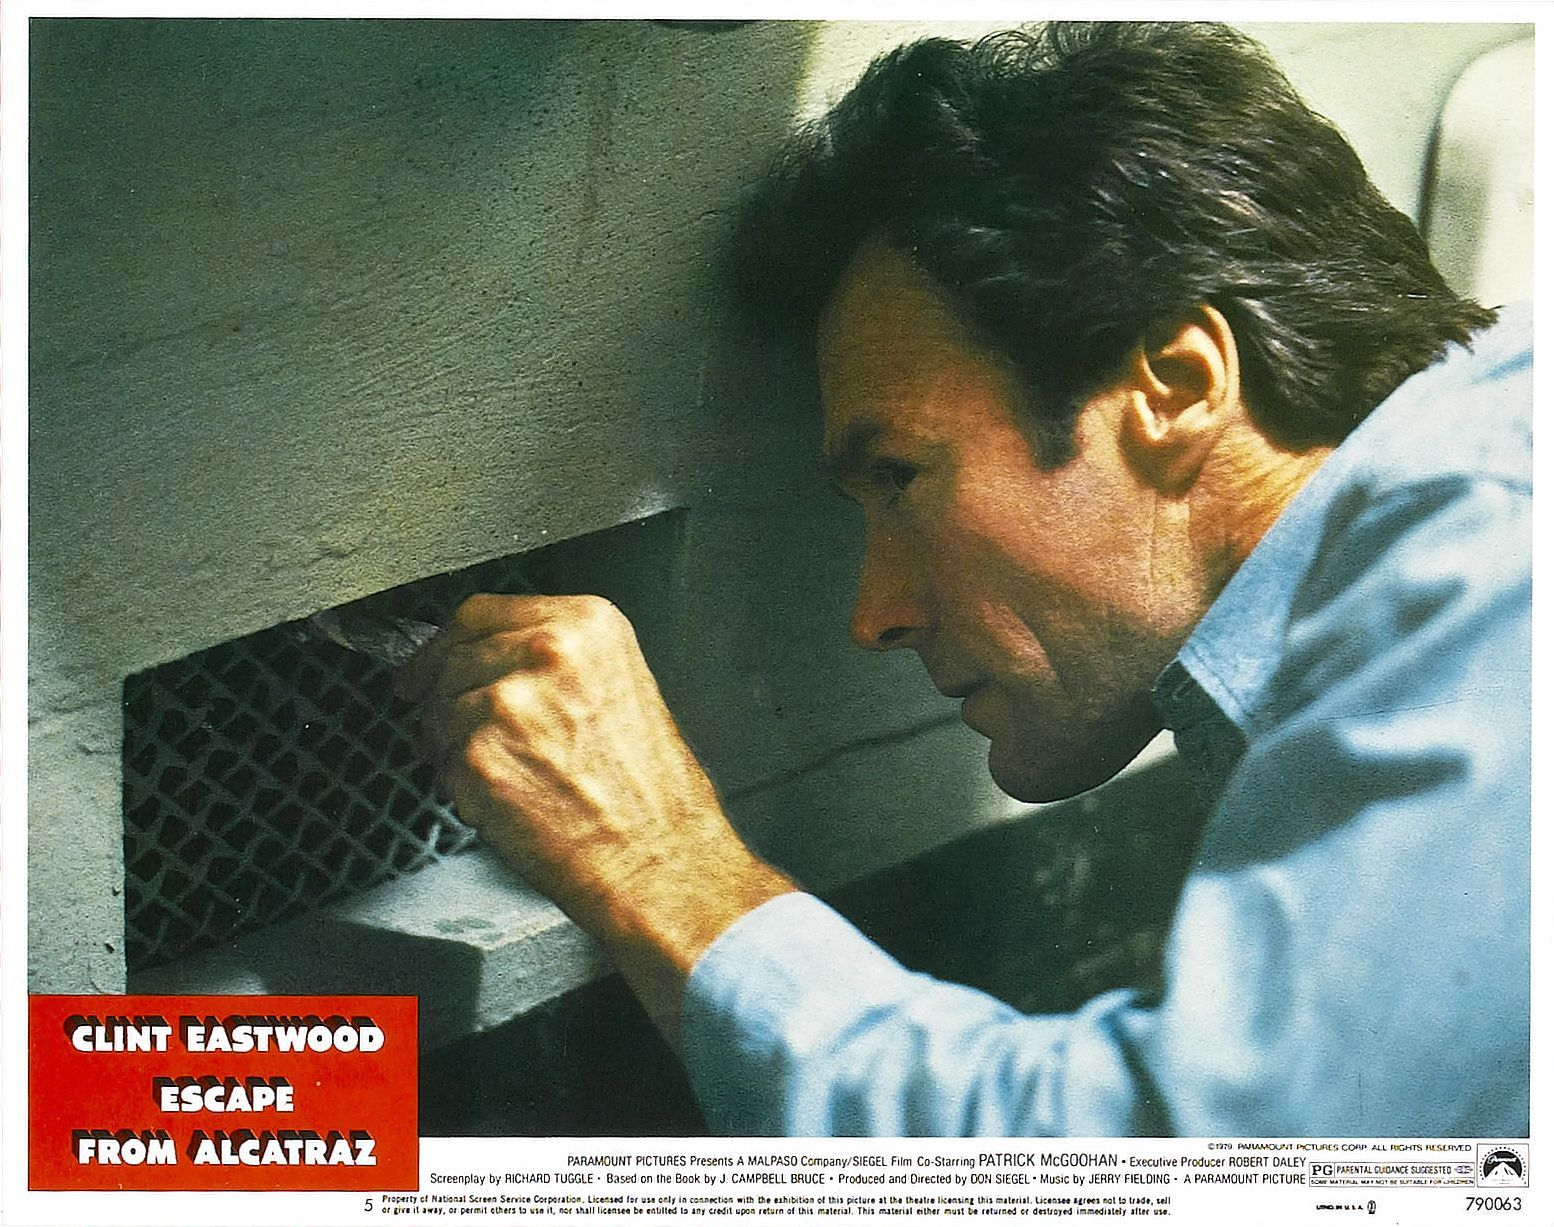 Escape From Alcatraz Lobby Card 1979 Clint Eastwood As Frank